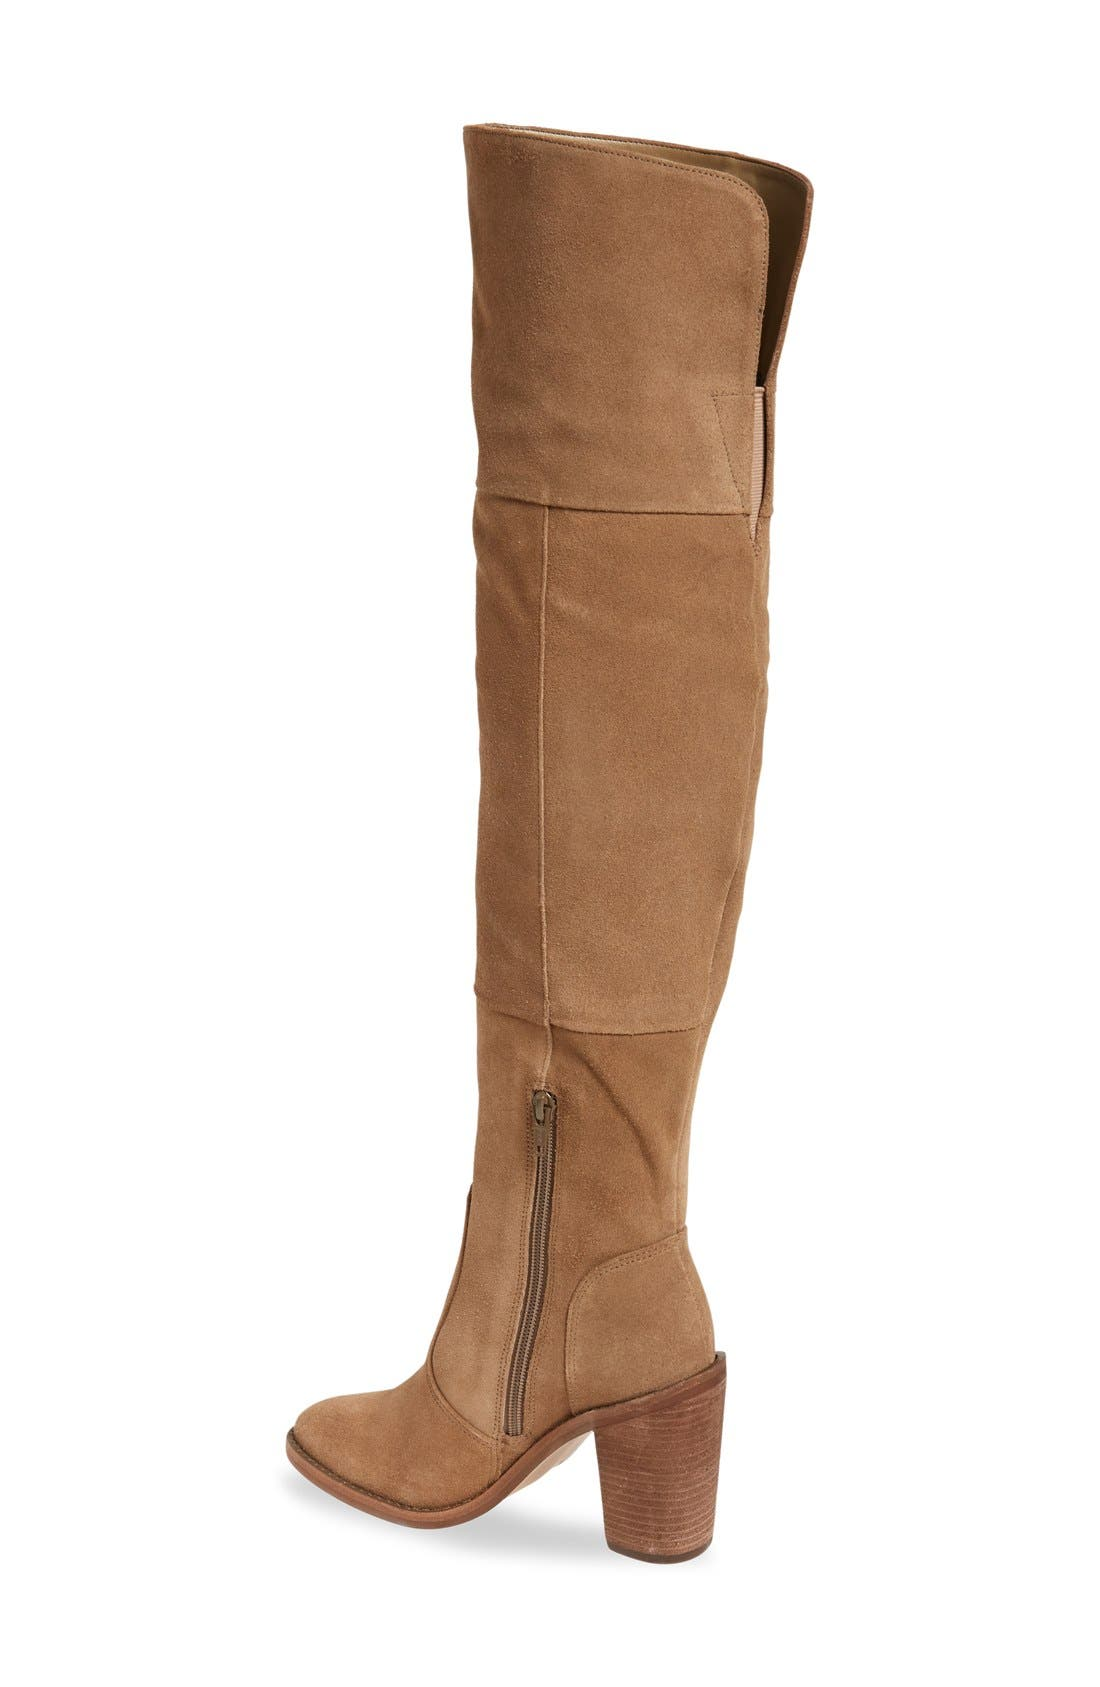 Alternate Image 2  - Vince Camuto 'Morra' Over the Knee Boot (Women)